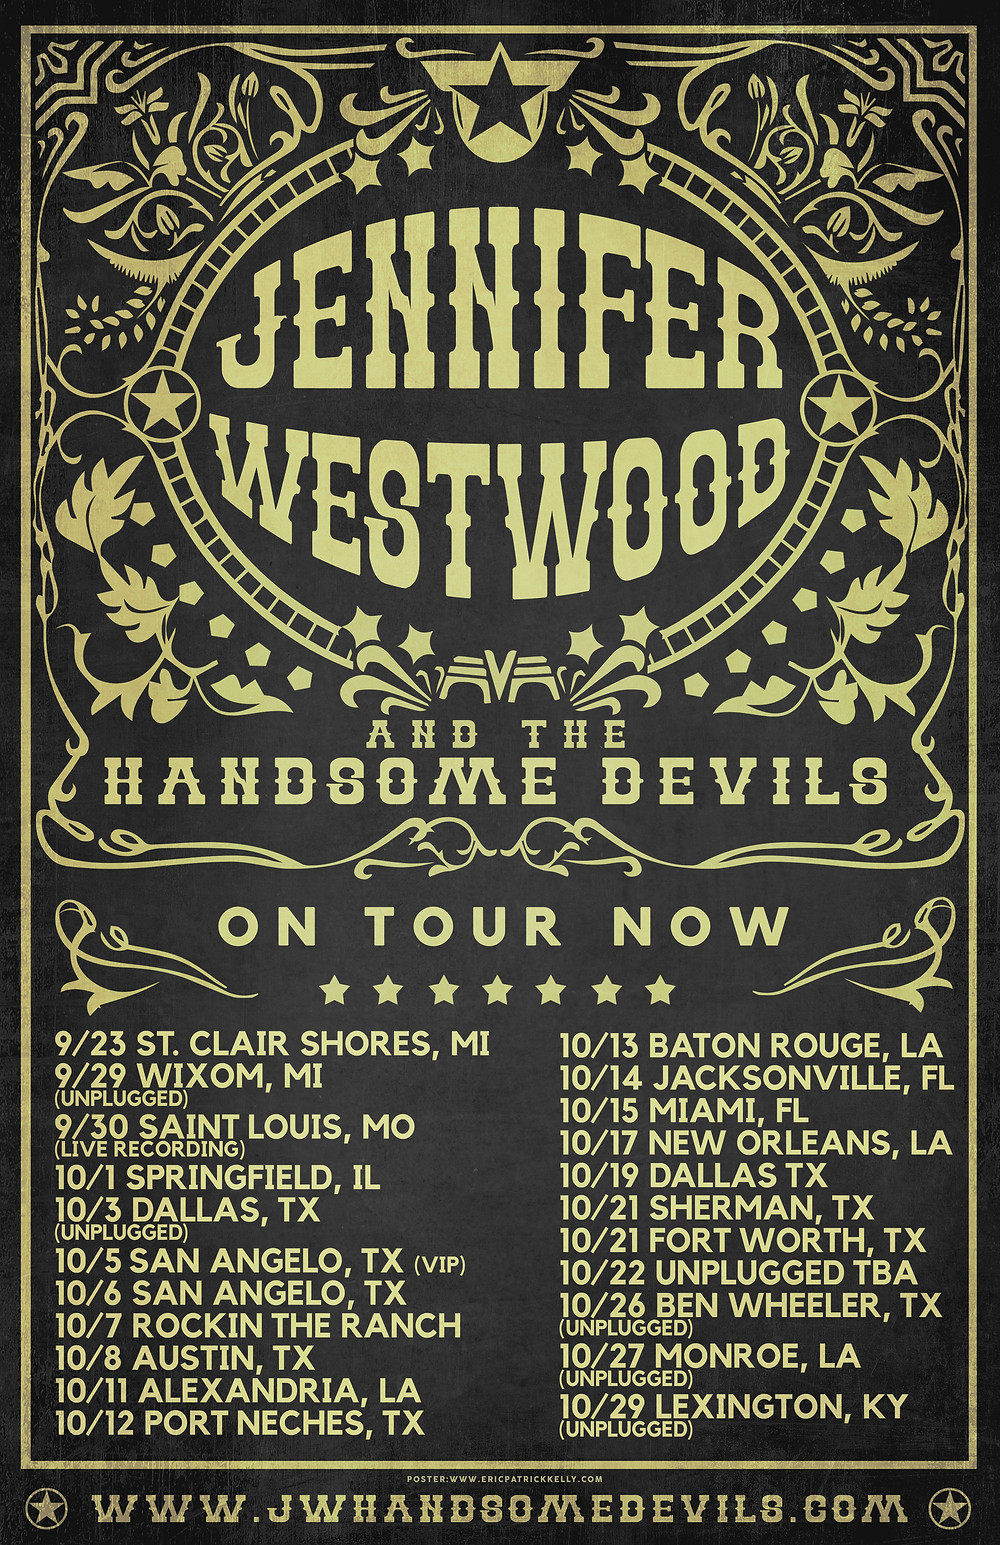 Rockin the Shores in Saint Clair Shores, MI with Shooter Jennings/ - Fall Tour Dates